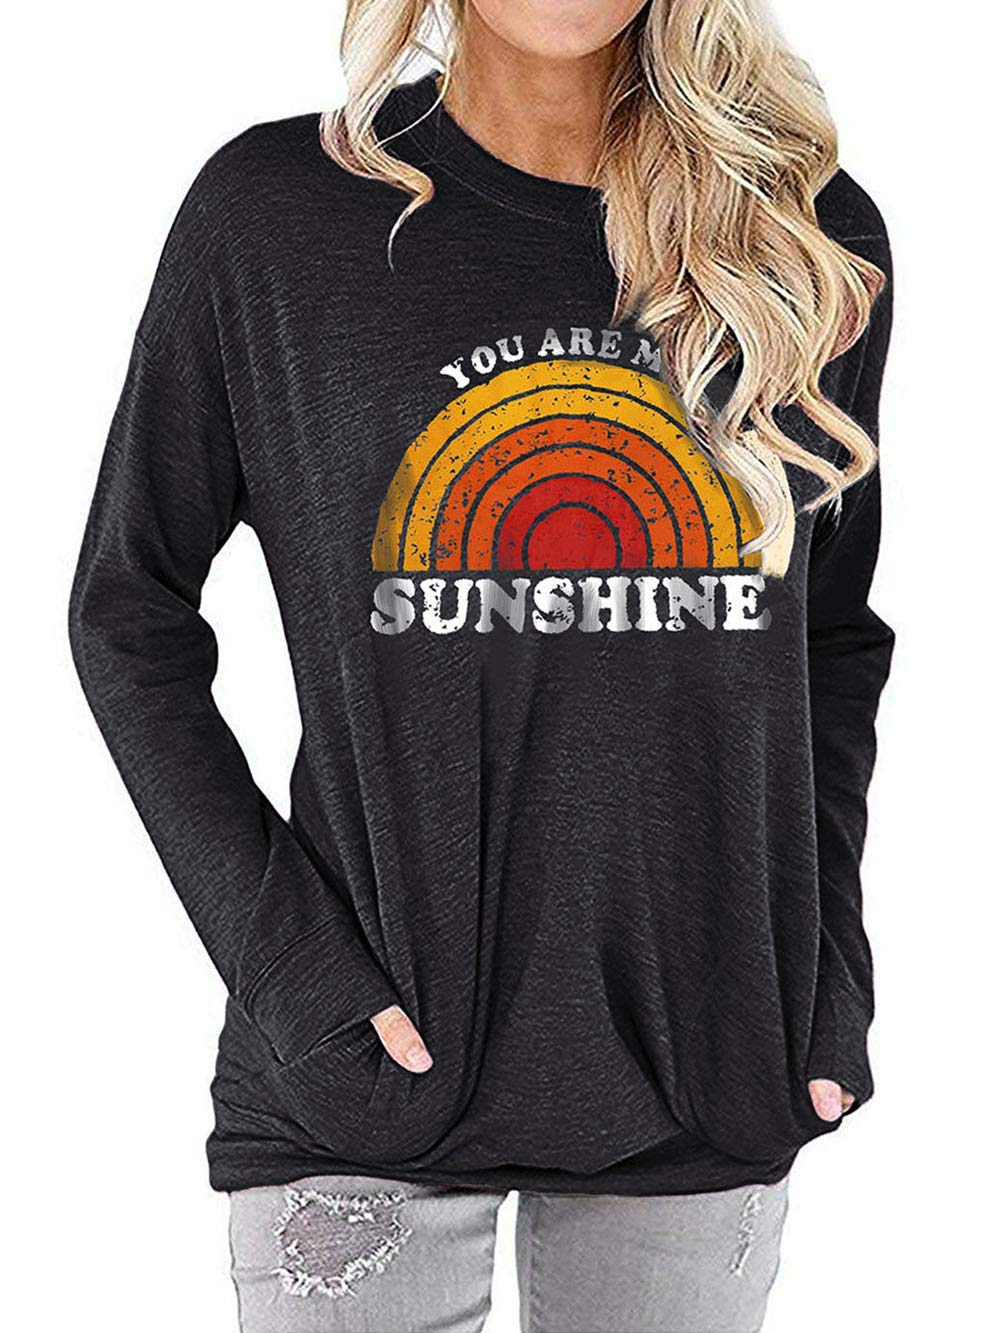 YASAKO Casual Graphic Sweatshirt for Women with Pocket Comfy Fit Lightweight Pullover Tee Shirts Letter Print Tops,B-Black,M